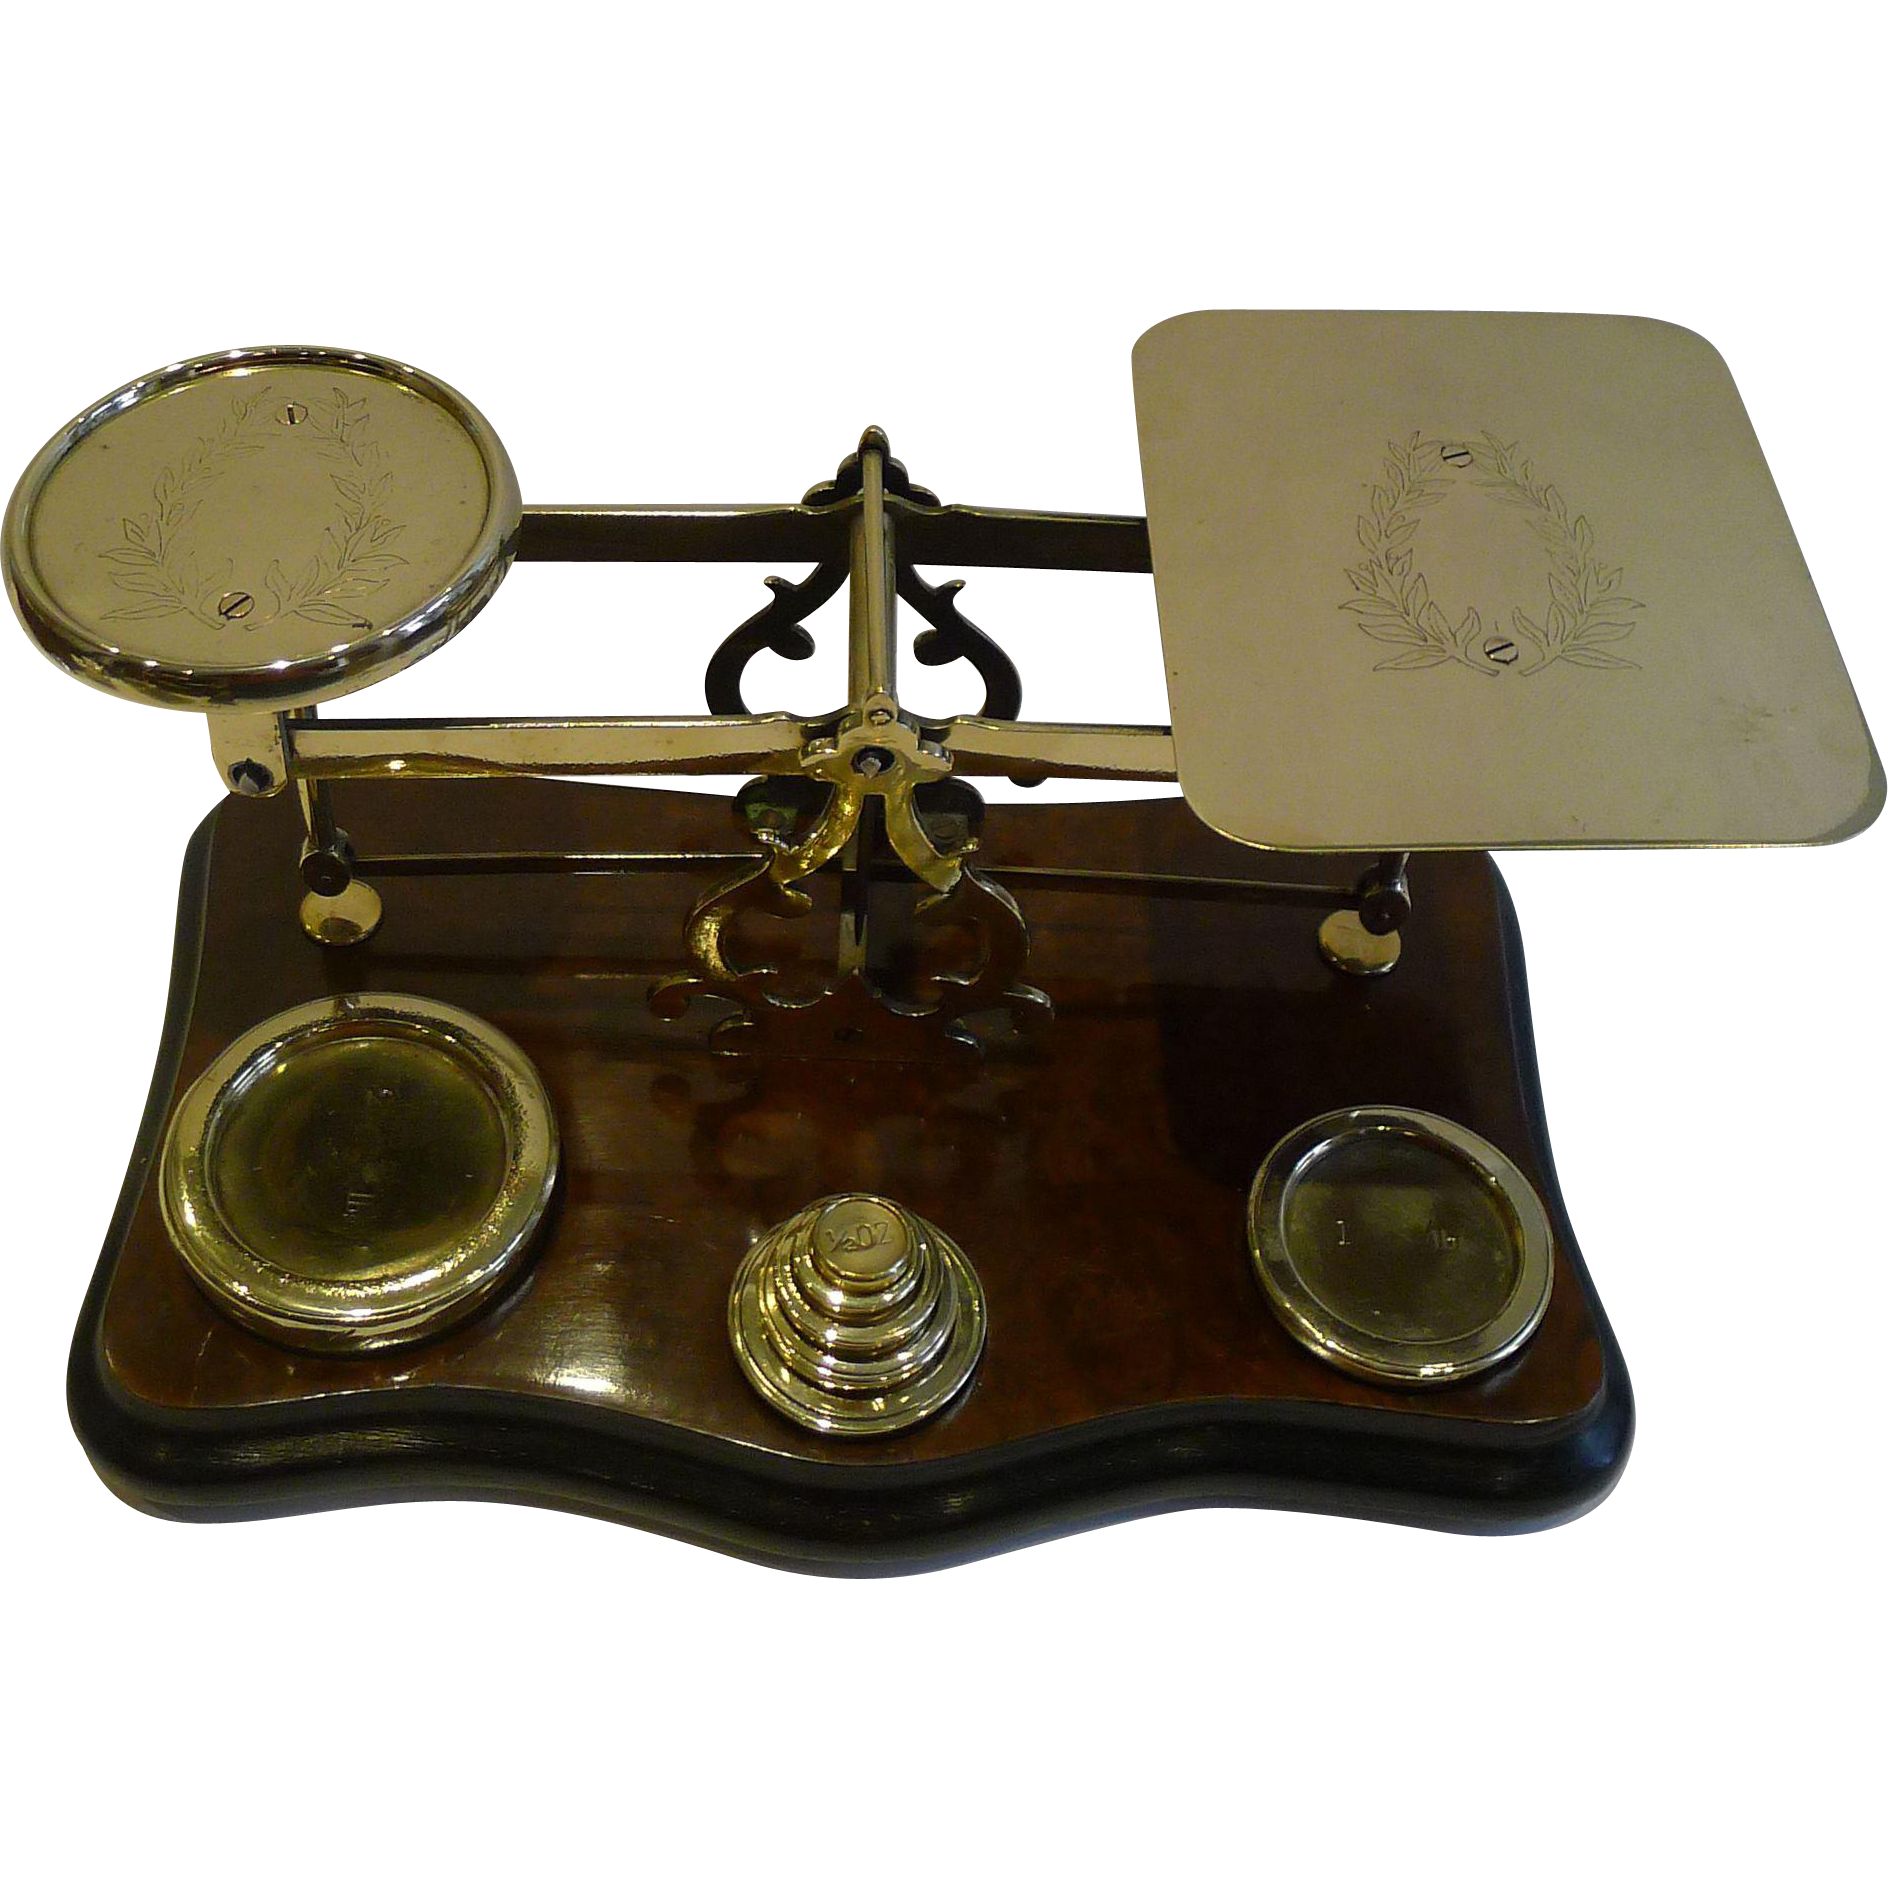 Grand Oversized Antique English Burr Walnut Postal or Letter Scale c.1890